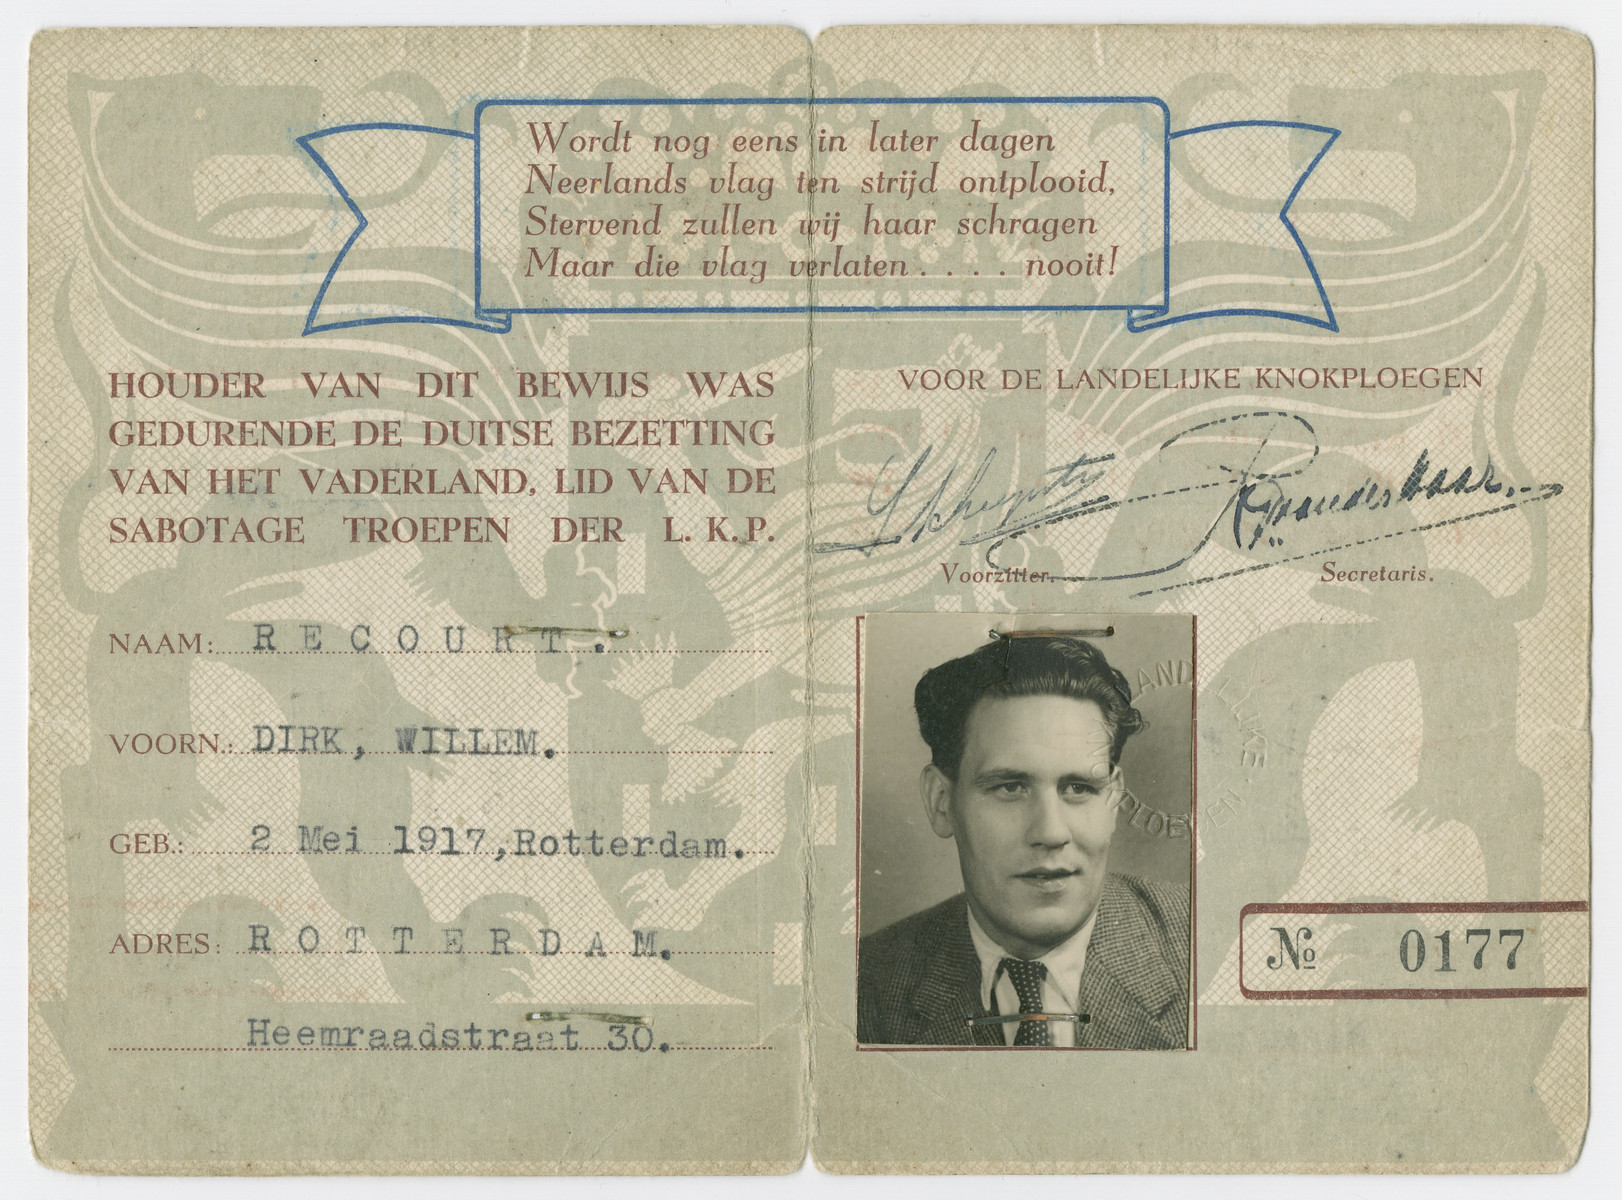 Identification card issued to Willem Dirk, a member of the Dutch resistance.